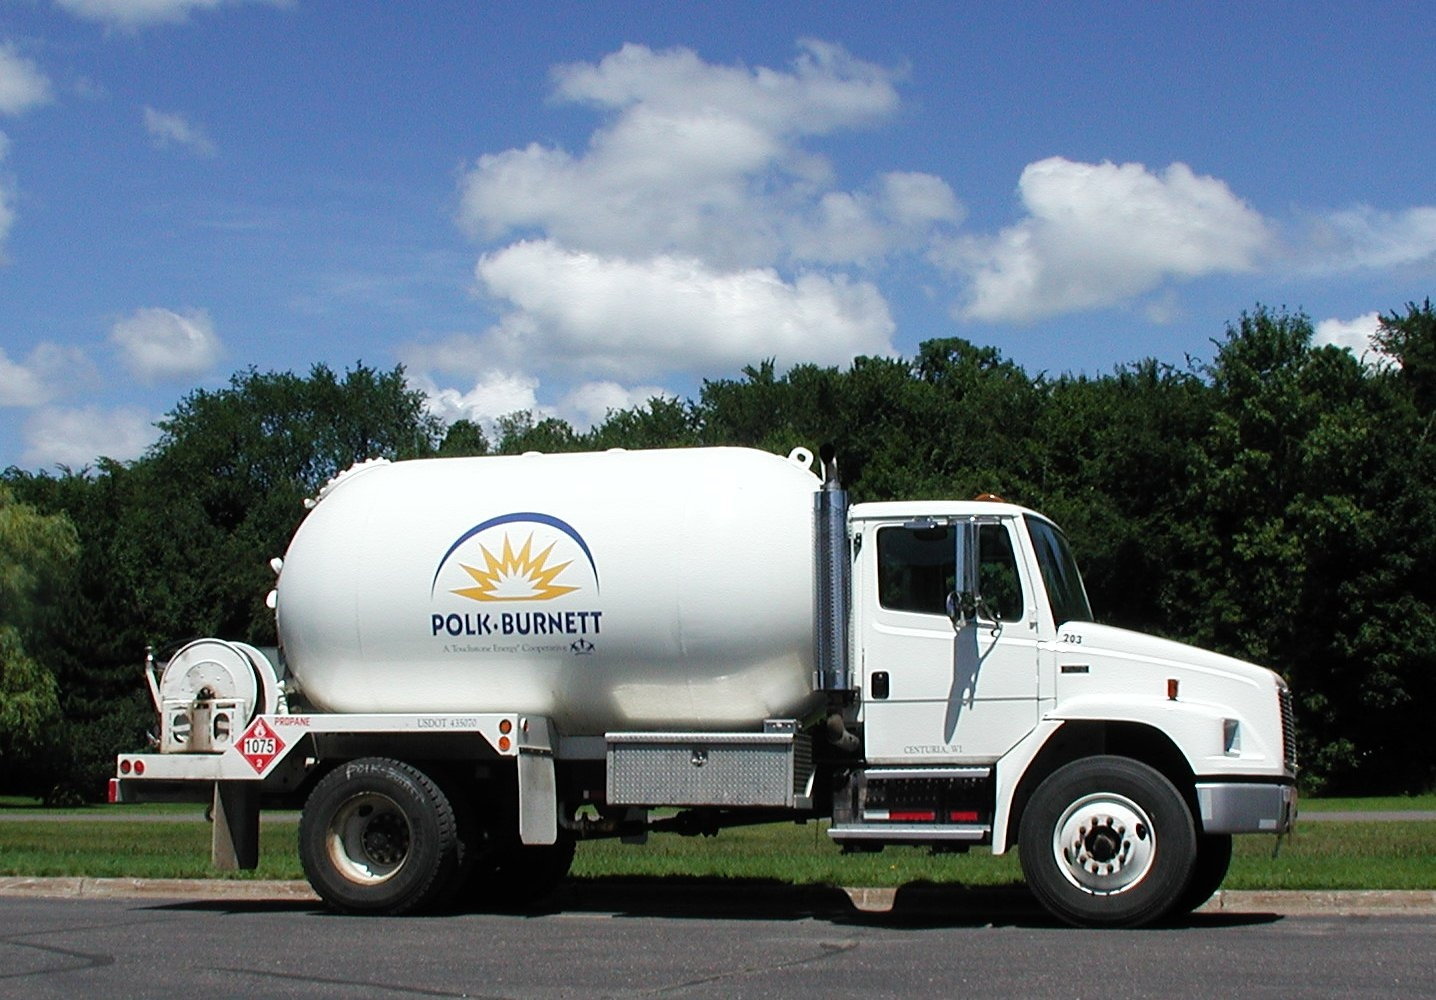 Polk-Burnett Propane began in 1996.